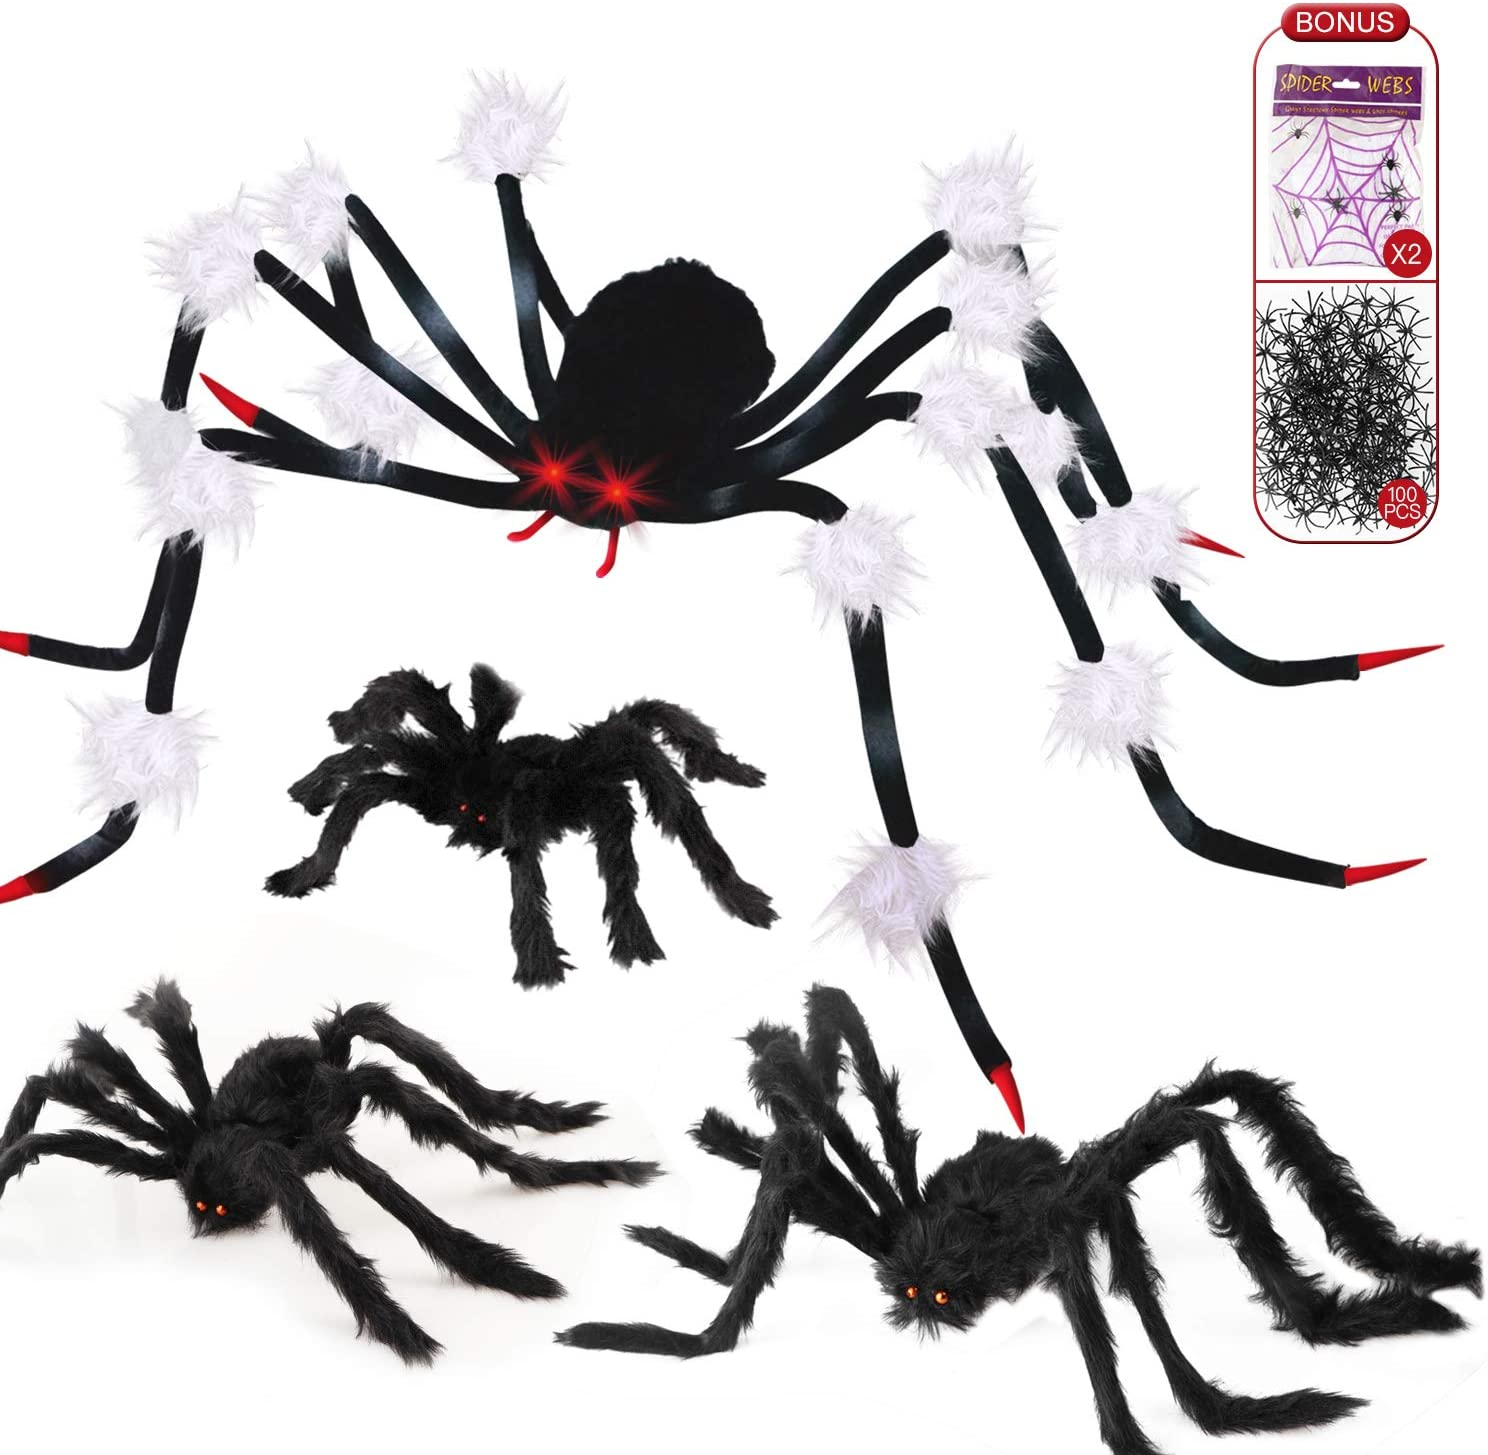 "MITCIEN Halloween Spider Decorations Outdoor Giant Large Spider 51"" with LED Red Eyes and Scary Sound, 3PCS Big Realistic Hairy Spiders 20"" 30"" 35"", 100PCS Plastic Spiders and 2PCS Stretchy Spider Webs Set"